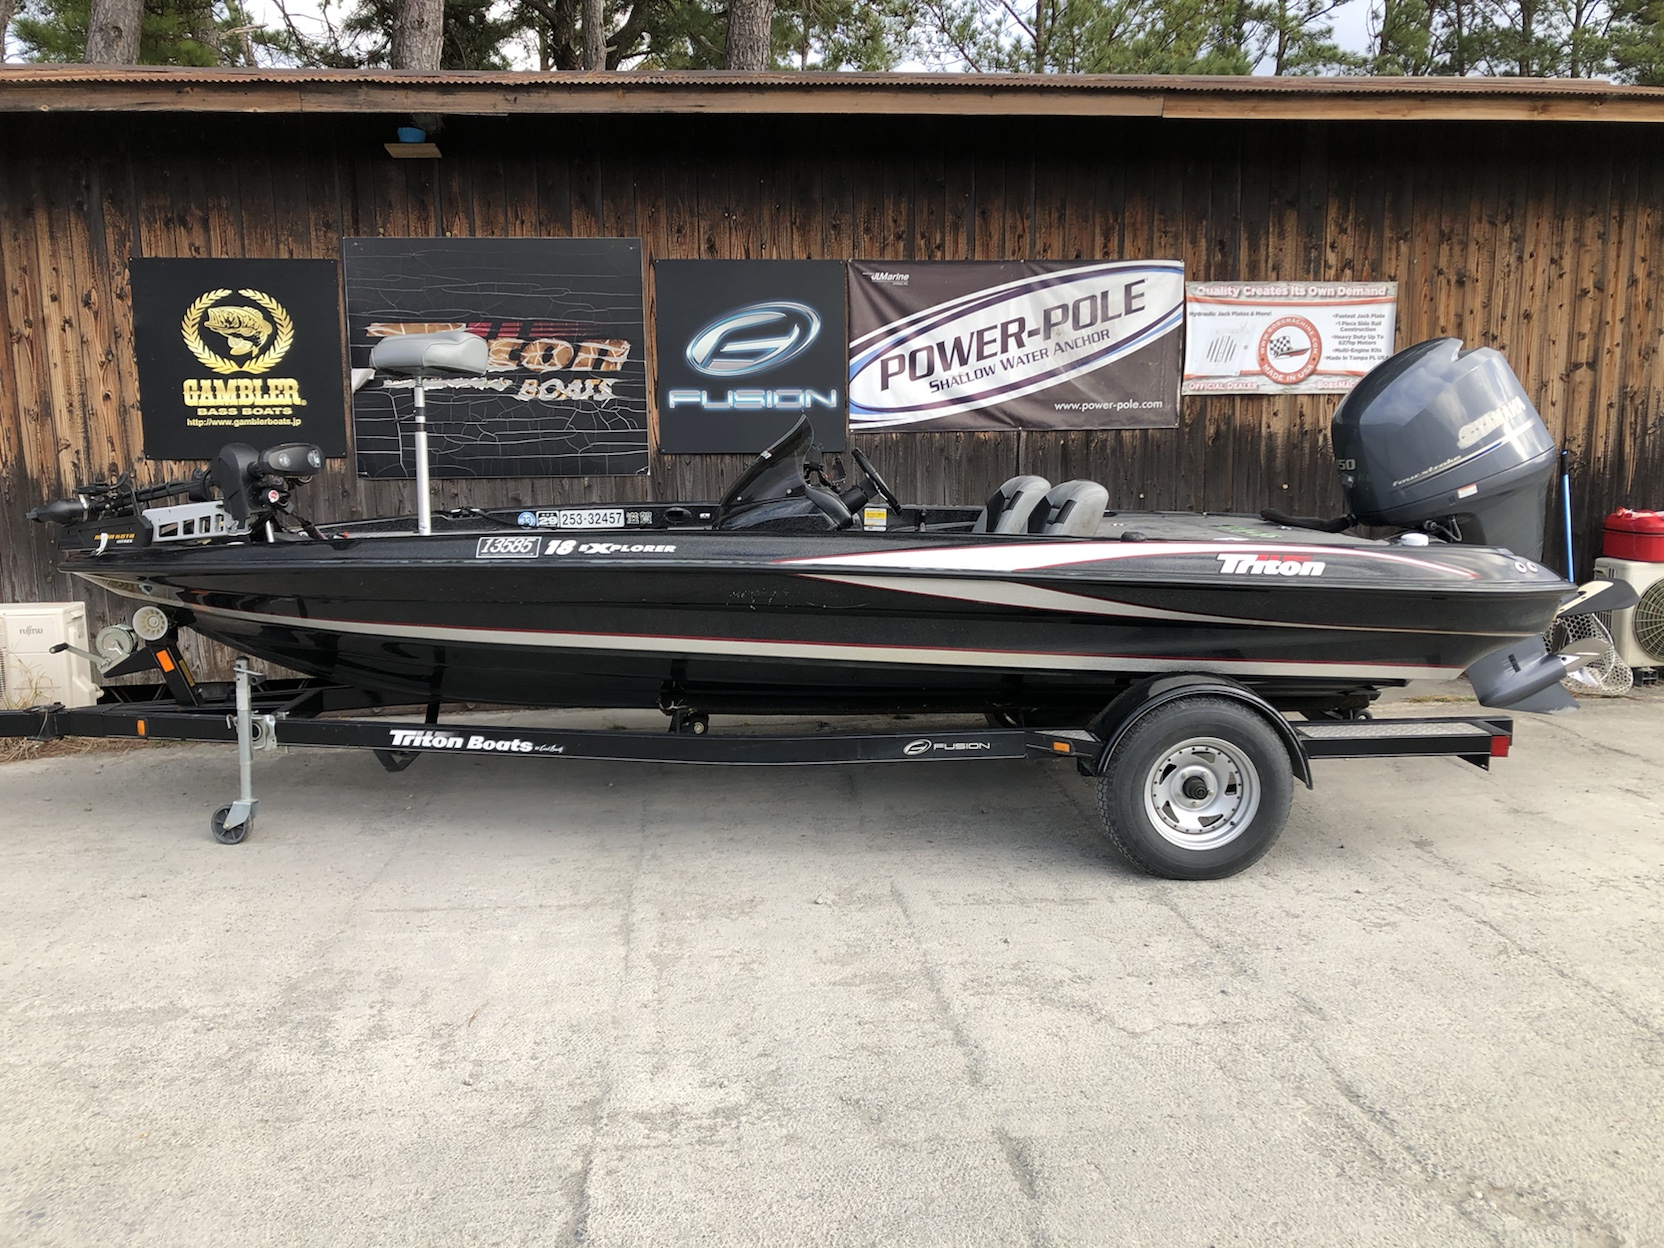 Sold out  '12 Triton Boats 18EXP with F150